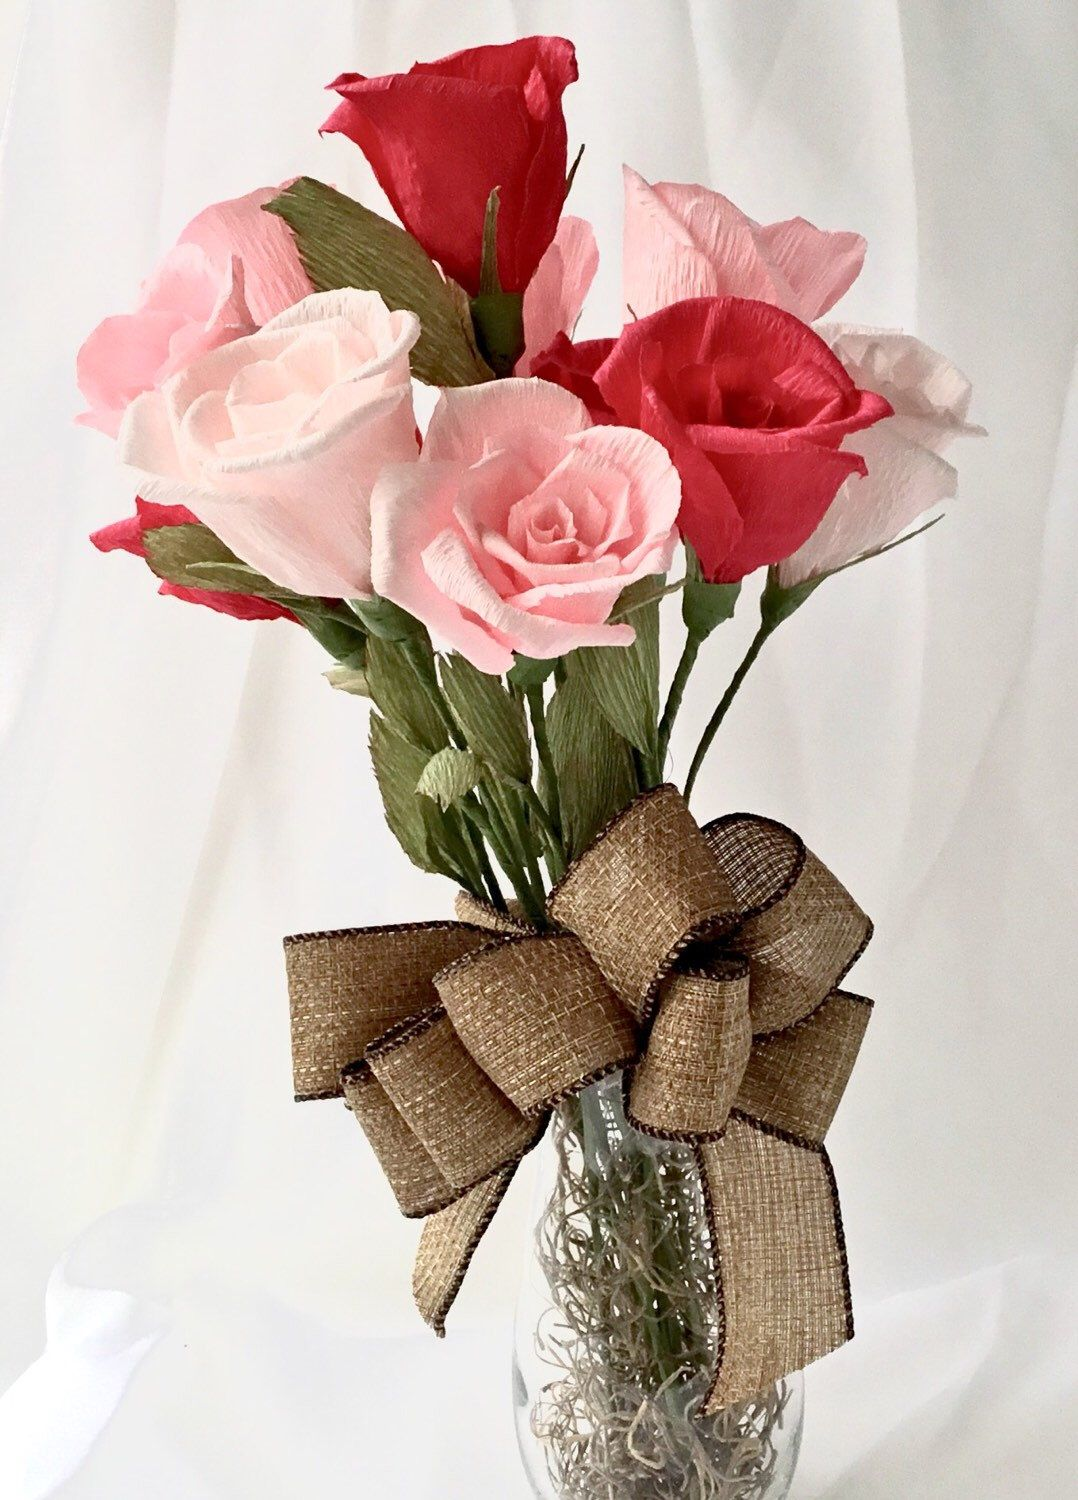 12 Paper Roses Make Beautiful Valentines Flowers Pink Crepe Paper